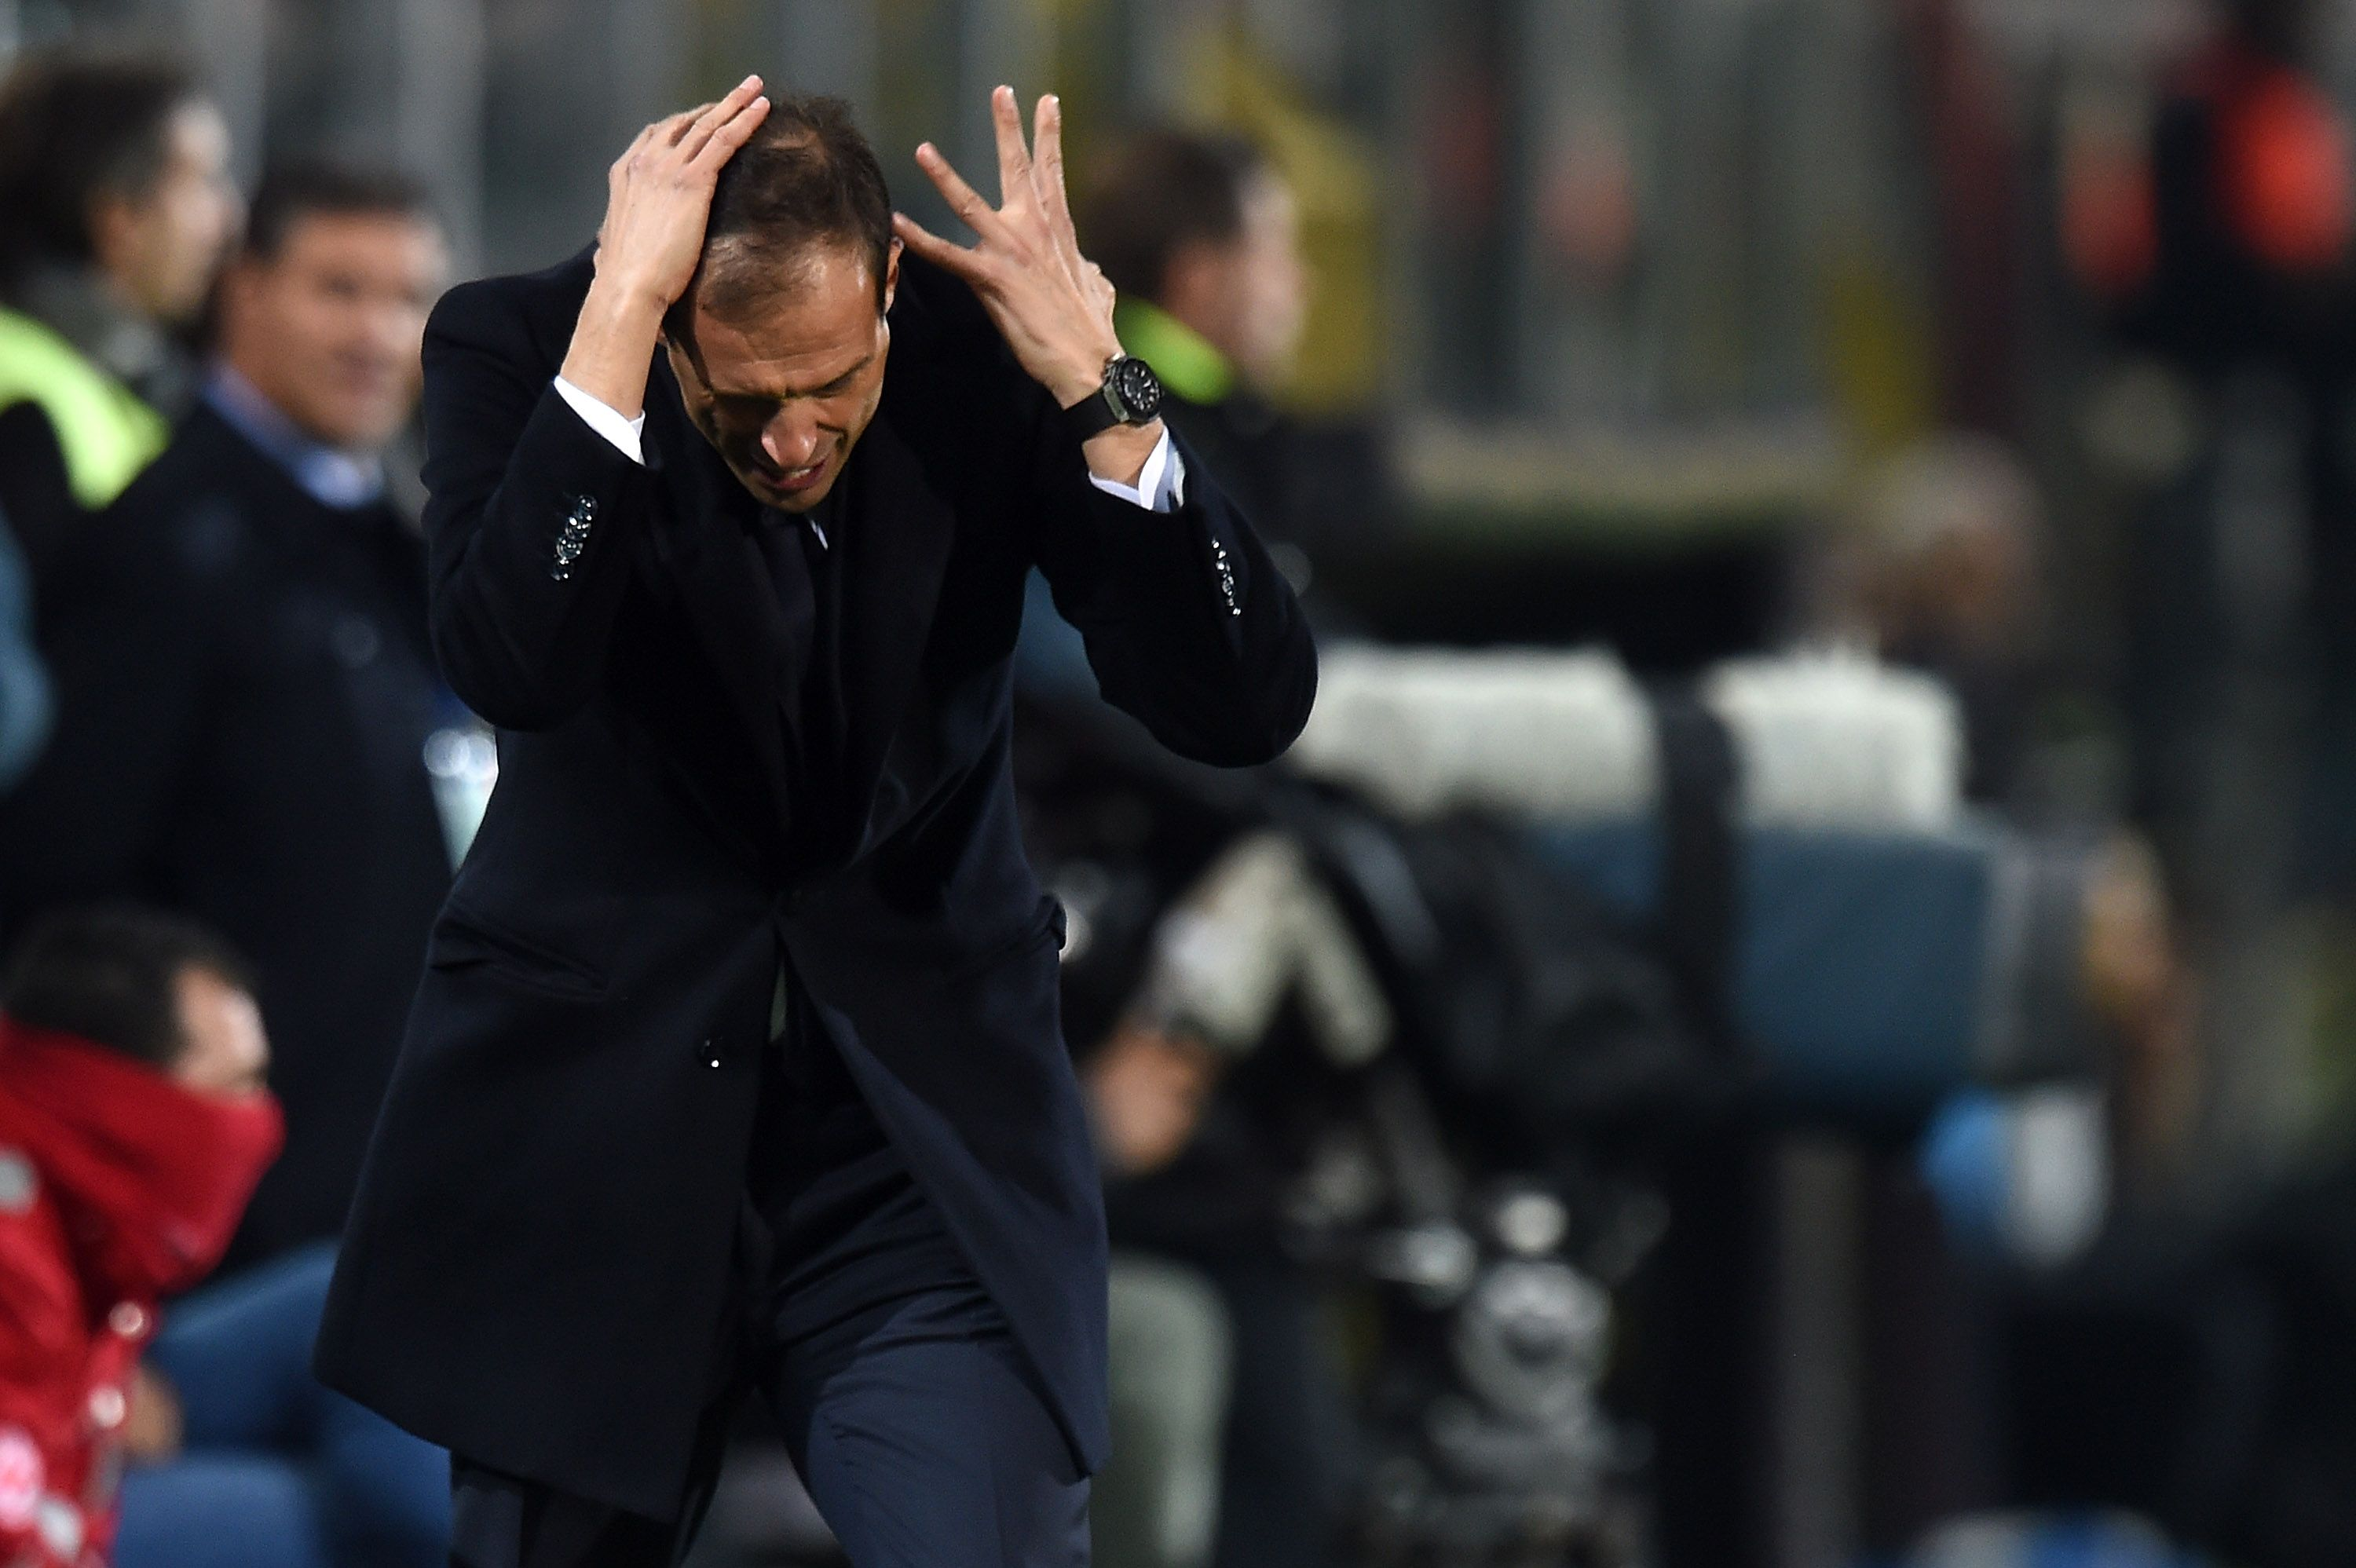 Juventus manager Massimiliano Allegri reacts during the Serie A match between Palermo and Juventus at Stadio Renzo Barbera on November 29, 2015 in Palermo, Italy. (Tullio M. Puglia/Getty Images)